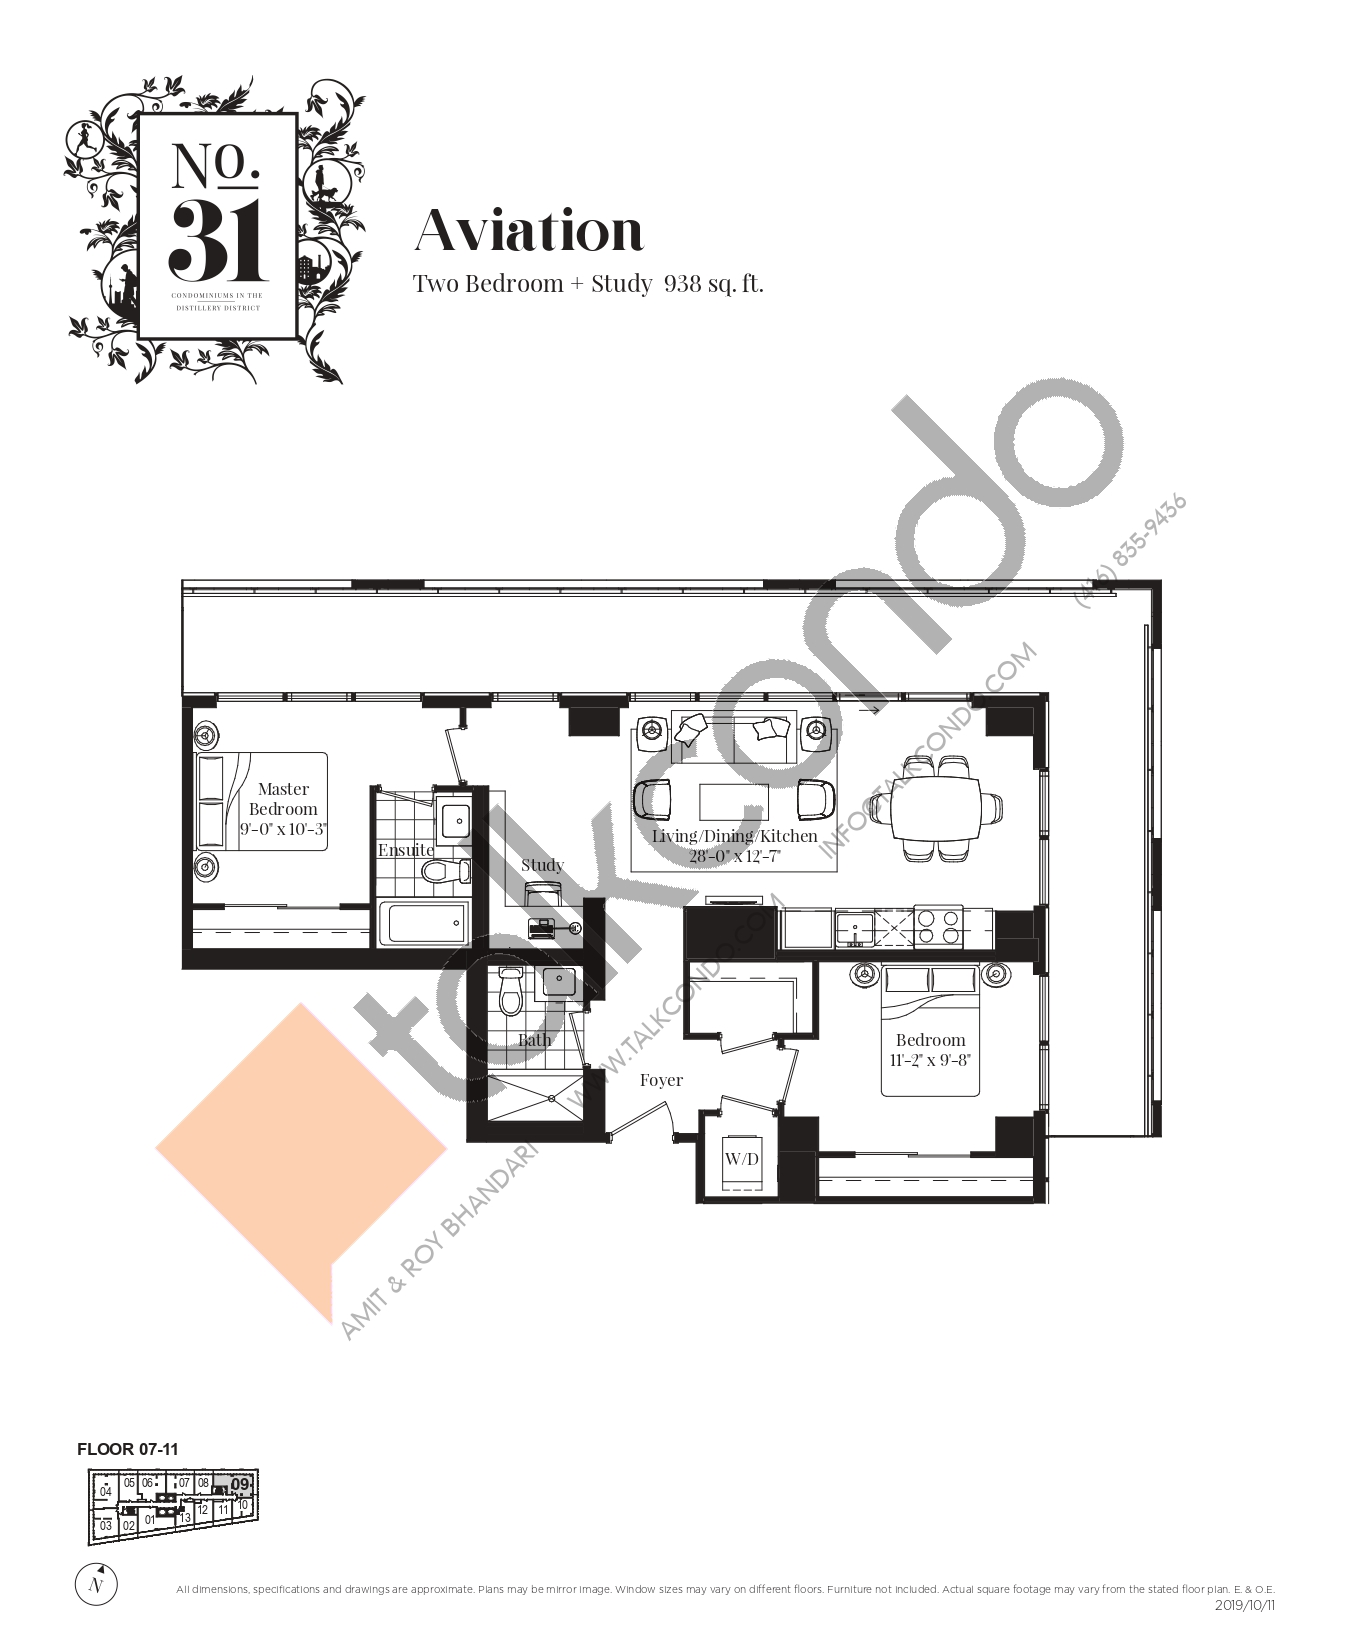 Aviation Floor Plan at No. 31 Condos - 938 sq.ft